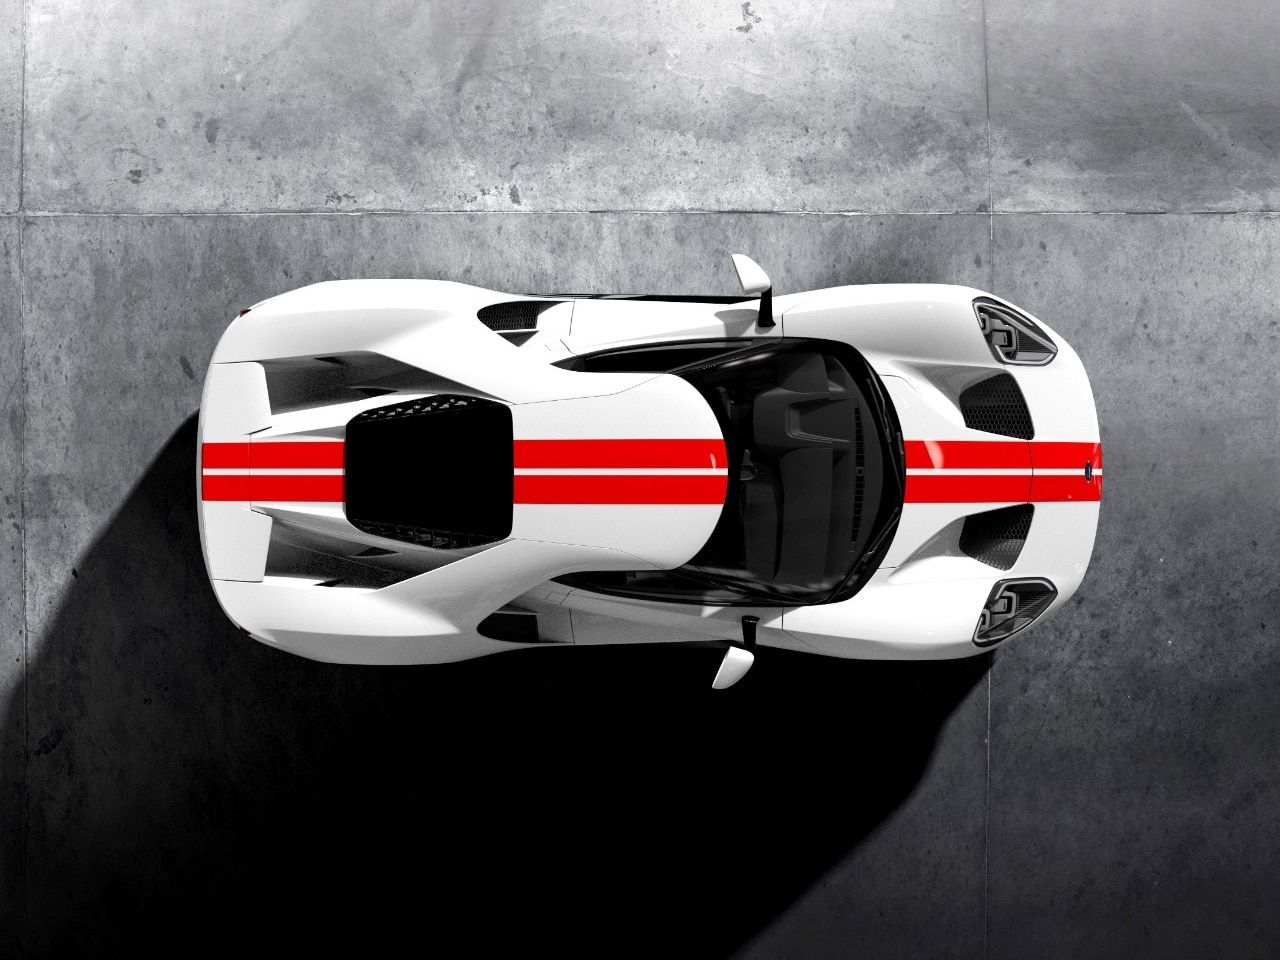 The New Ford Gt Supercar Is A Hit According To The Automaker The Gt Has Been So Popular That They Are Extending Production Of The Vehicle For Another Two